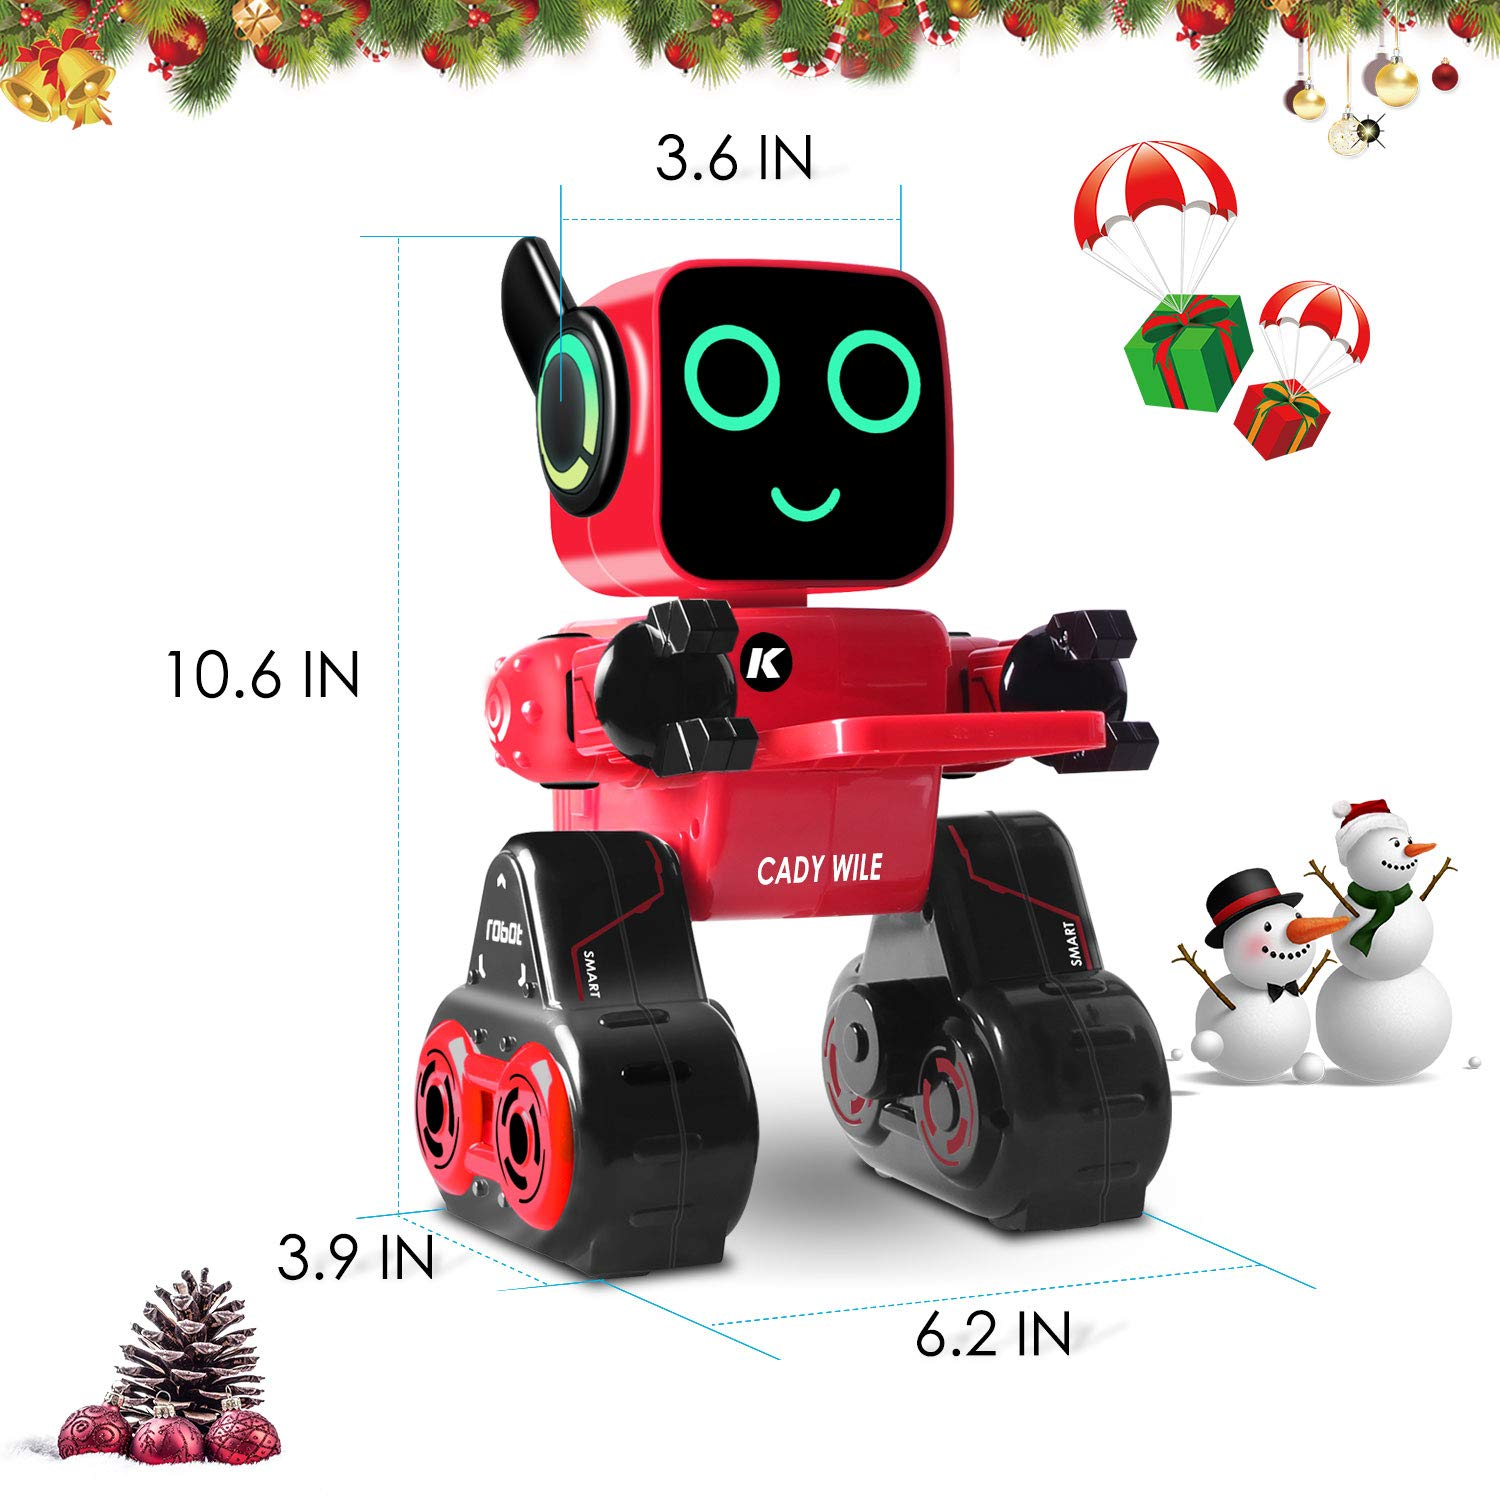 IHBUDS Programmable Remote Control Toy Robot for Kids,Touch & Sound Control, Speaks, Dance Moves, Plays Music. Built-in Coin Bank.Rechargeable RC Robot Kit for Boys, Girls All Ages-Red/Black by IHBUDS (Image #9)